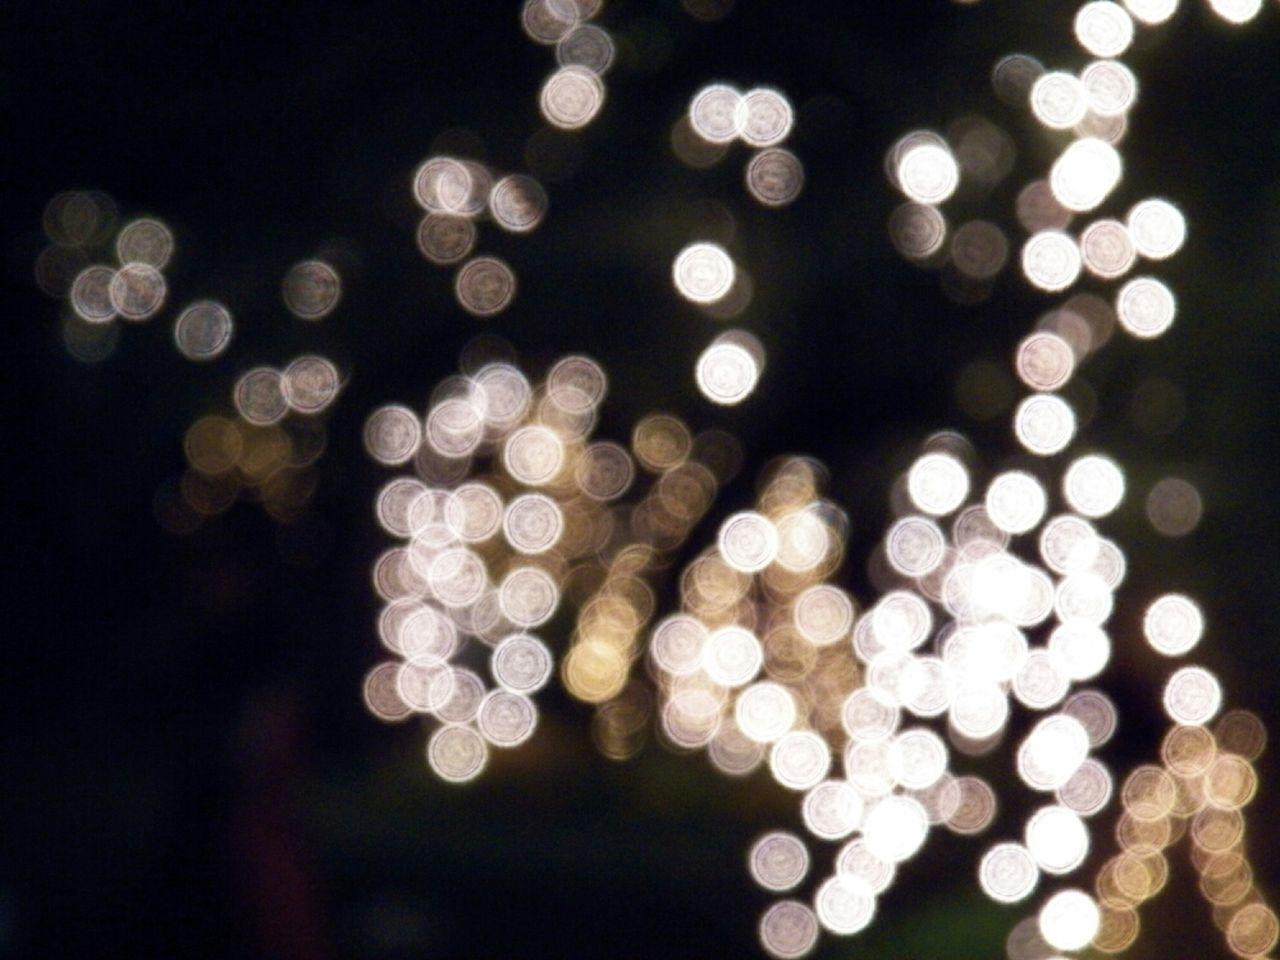 illuminated, lighting equipment, night, glowing, no people, defocused, electricity, outdoors, close-up, black background